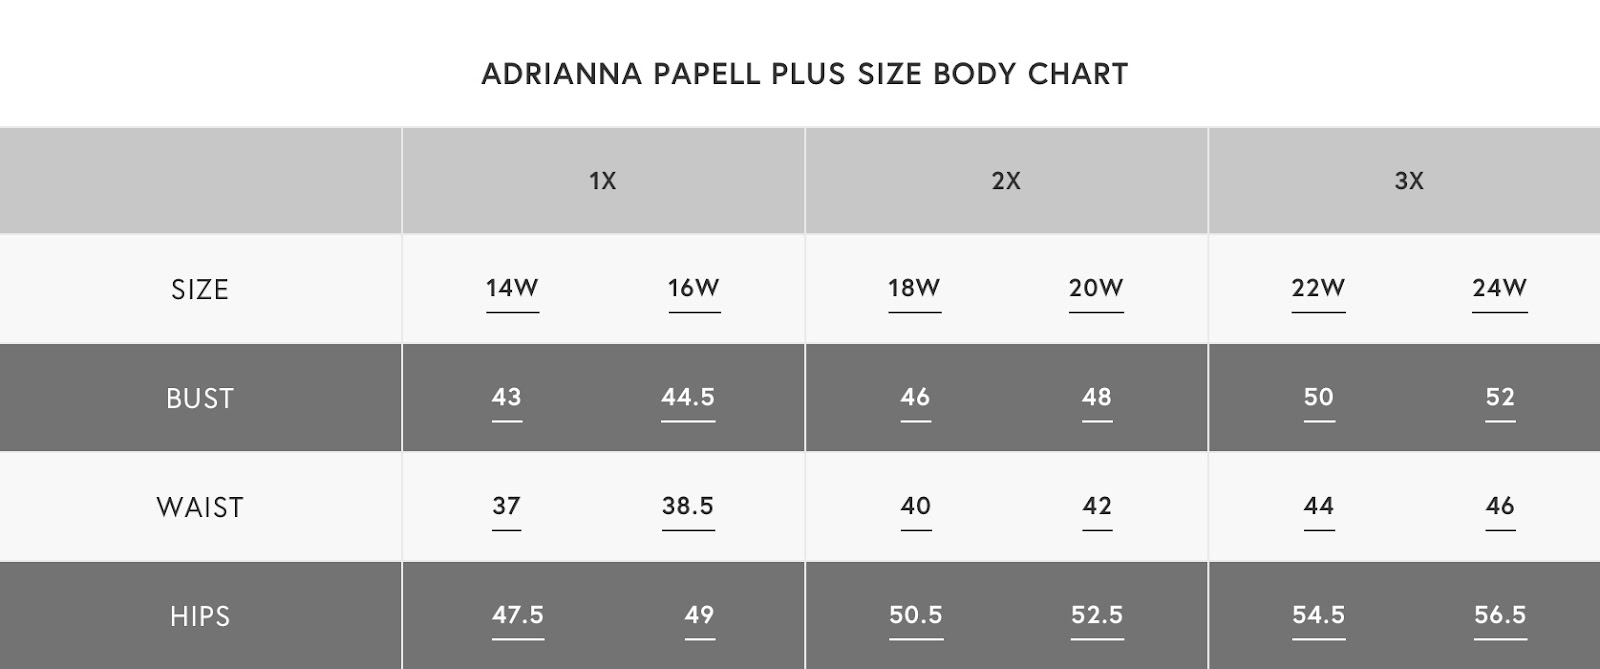 Adrianna Papell Dresses Review 2